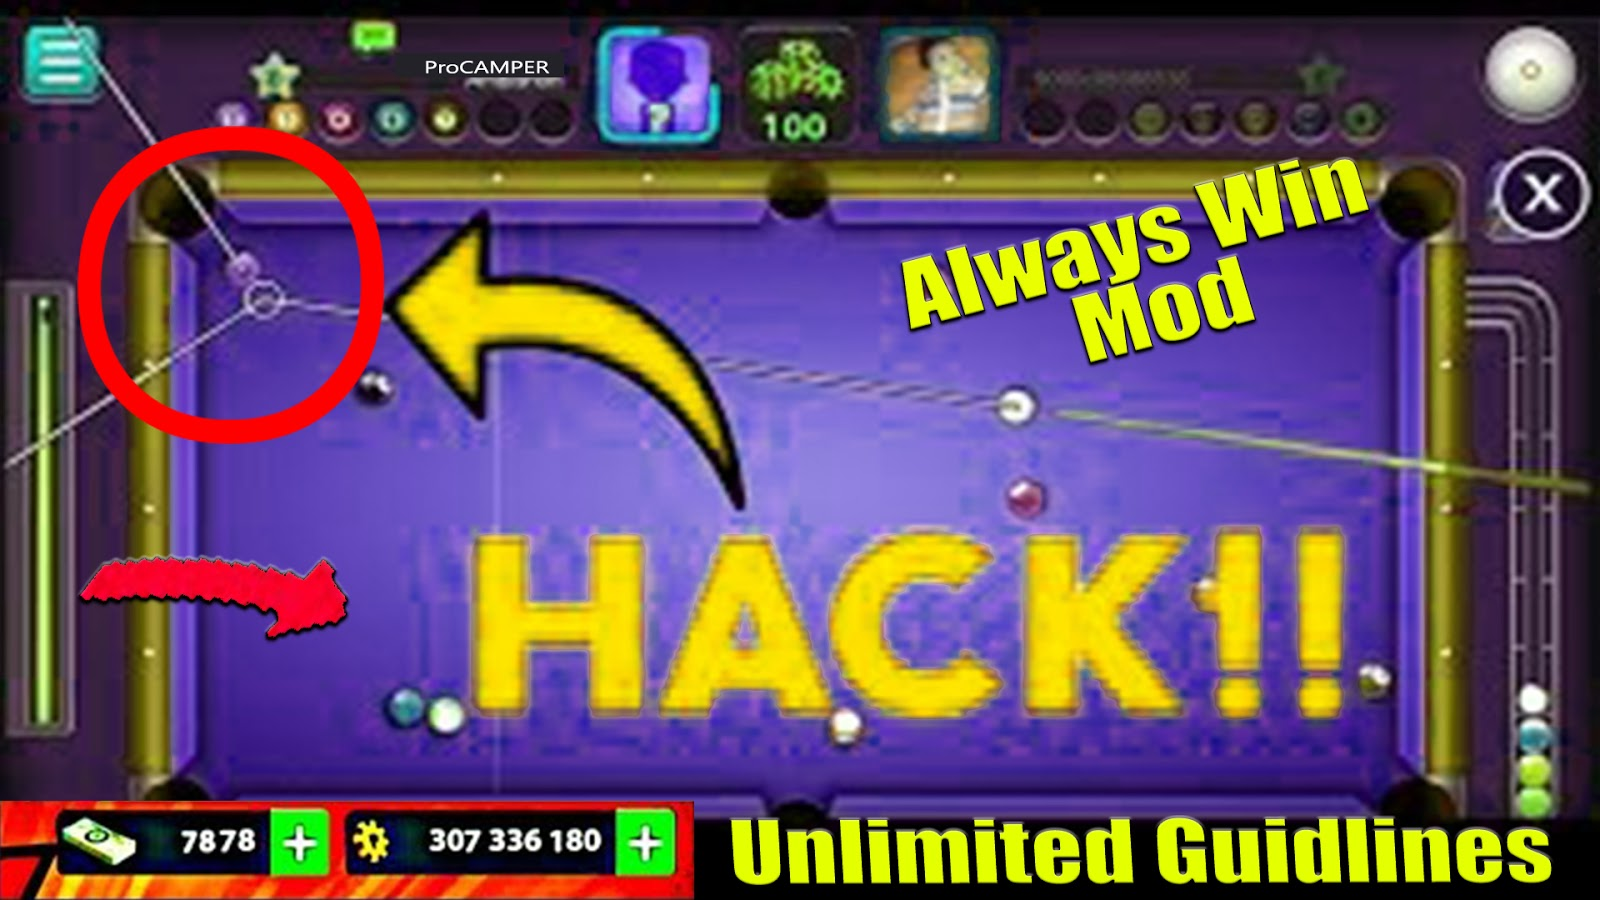 8 ball pool hack free download full version for pc